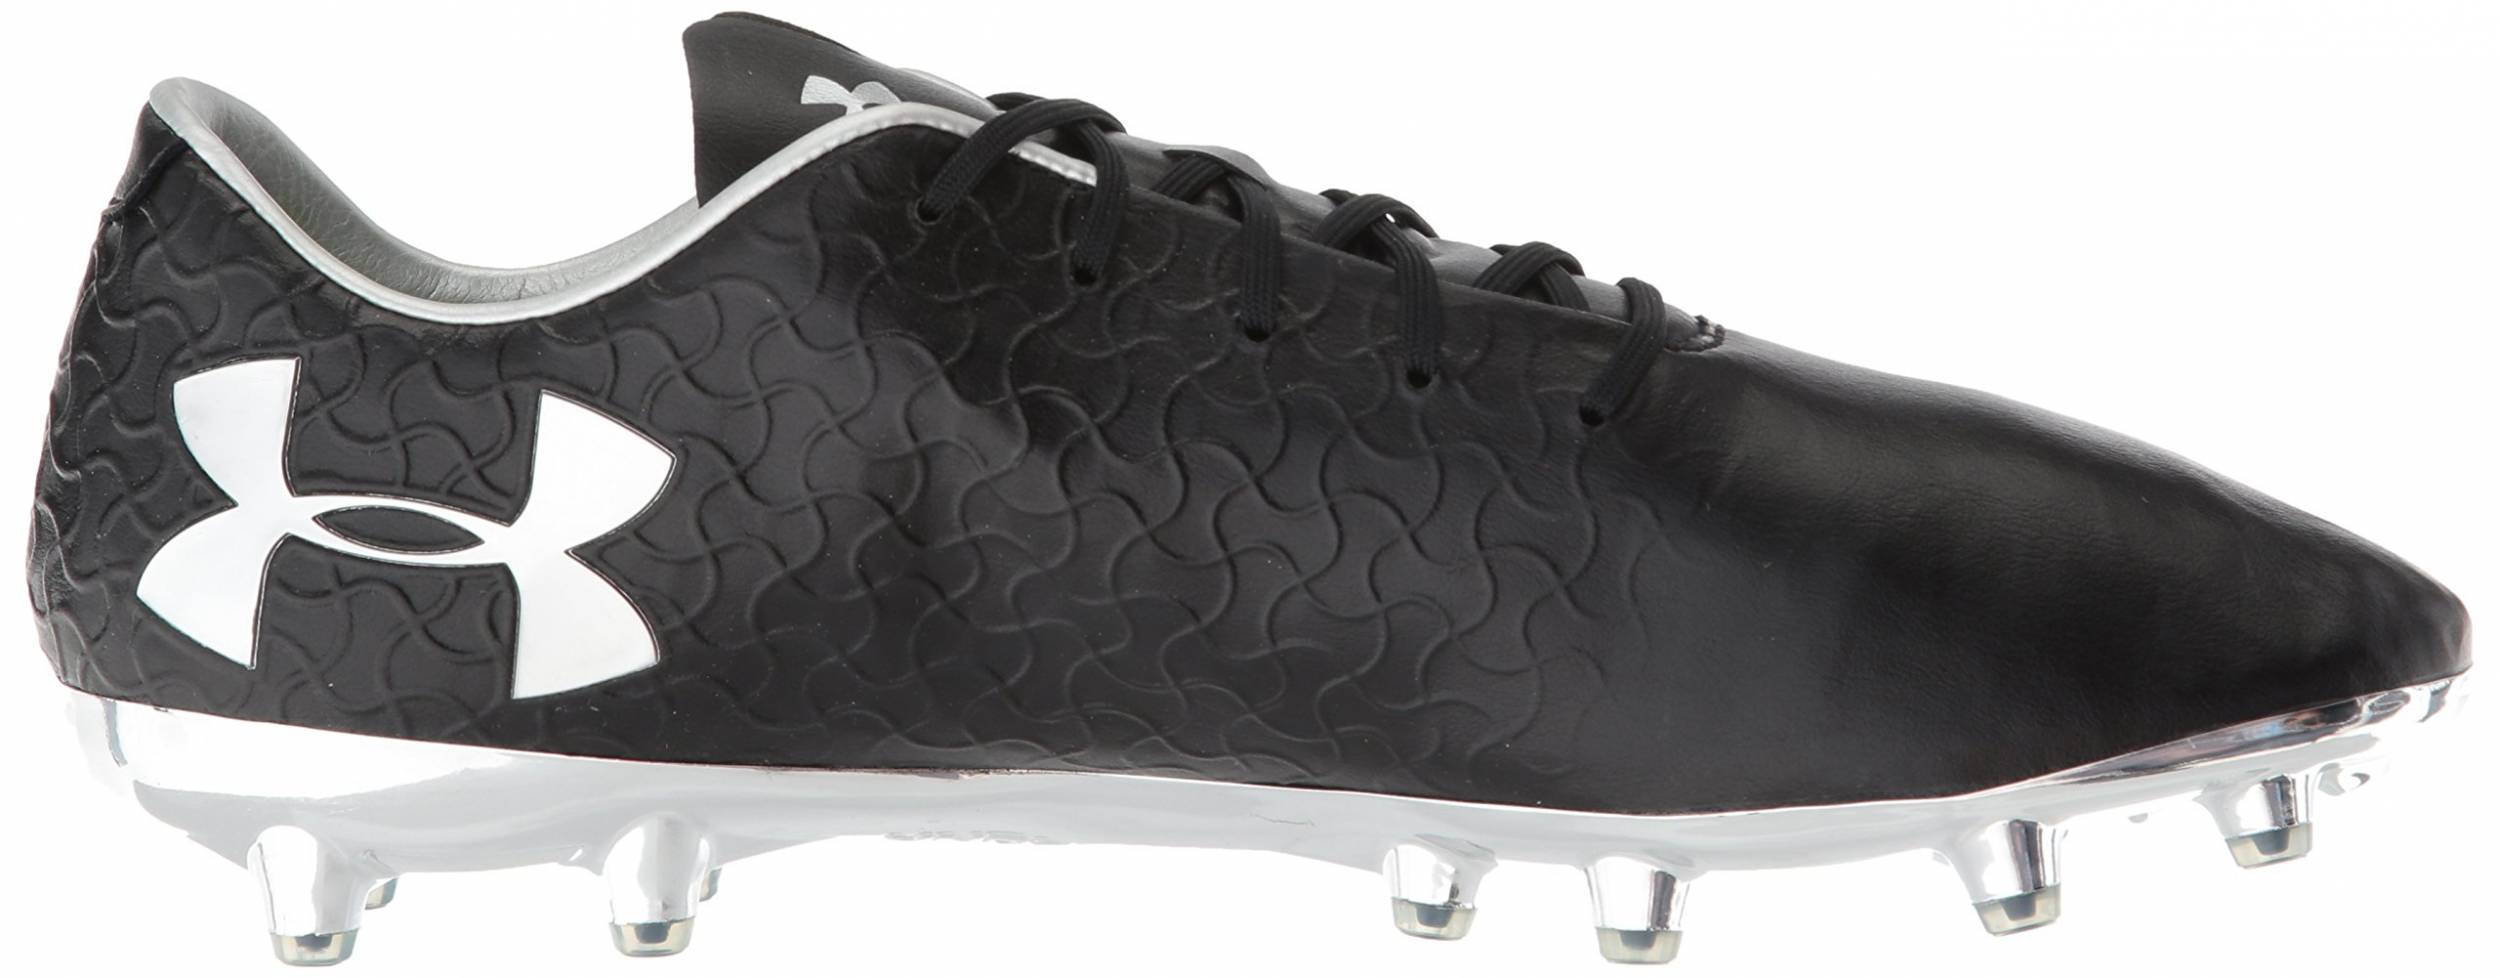 Under Armour Magnetico Pro FG Gold